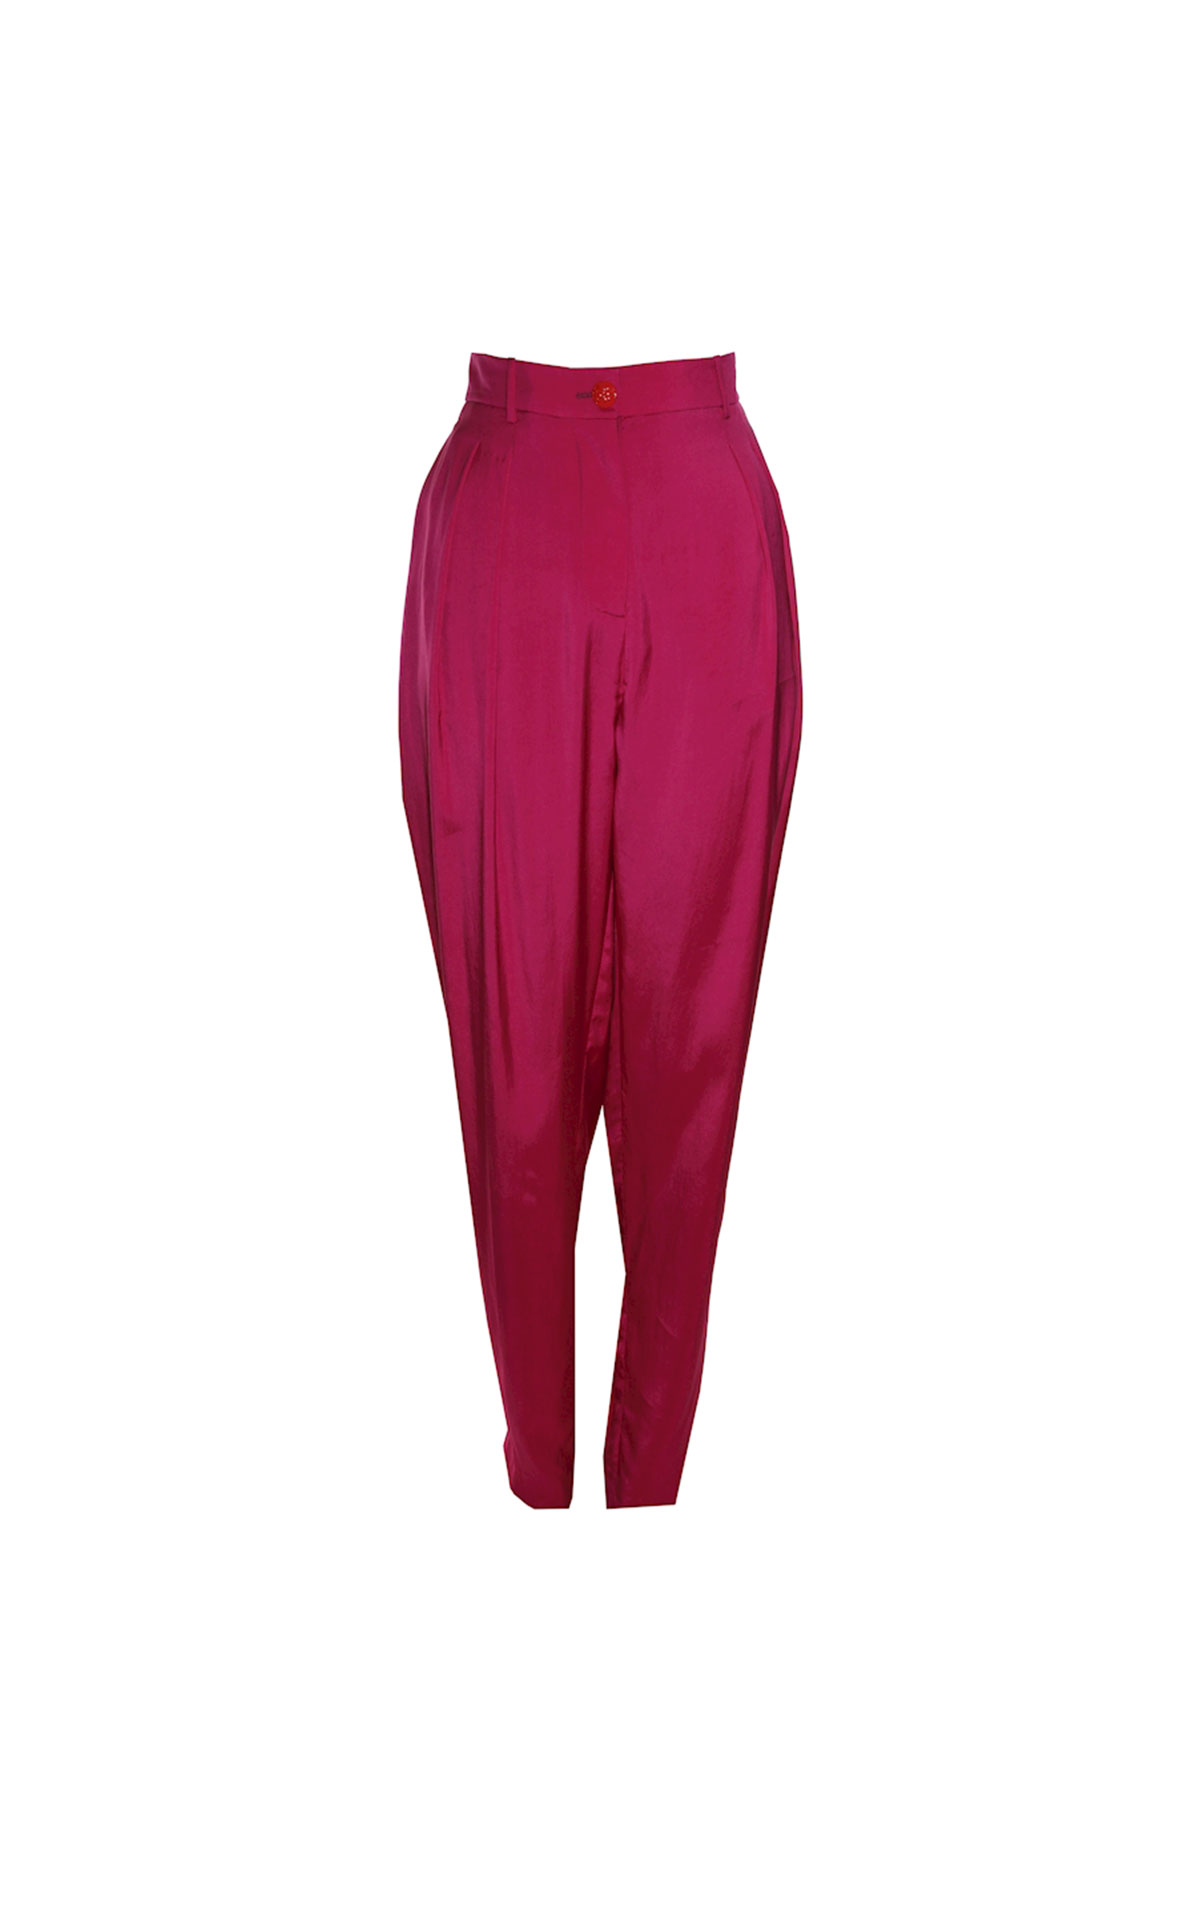 Escada Pink trousers from Bicester Village